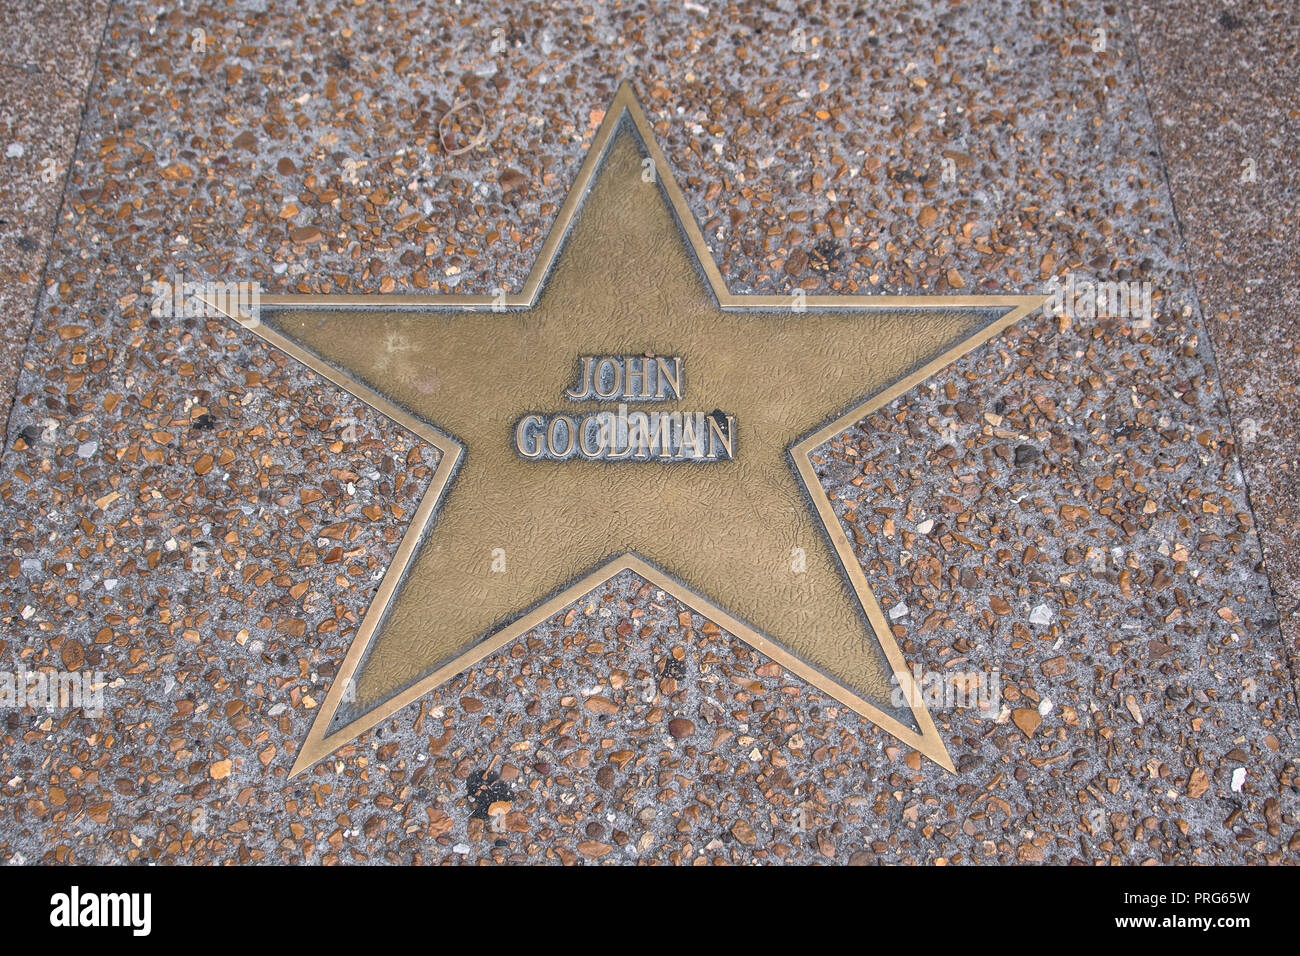 Actor John Goodman´s star on the St. Louis Walk of Fame, Delmar Boulevard, Delmar Loop, St. Louis, Missouri, USA - Stock Image